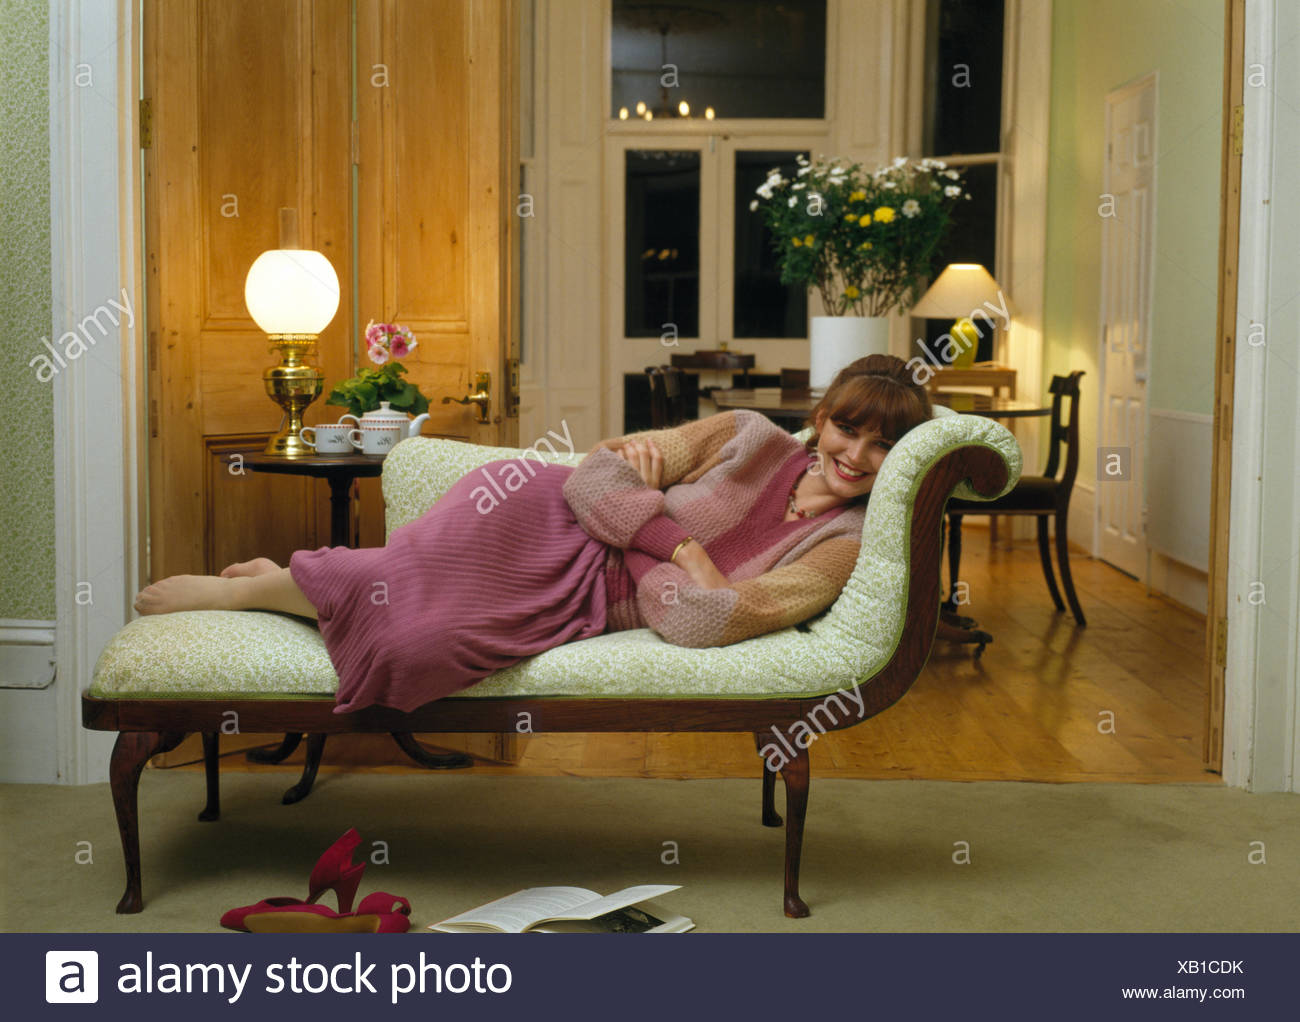 Young Woman Reclining On A Chaise Longue In A Seventies